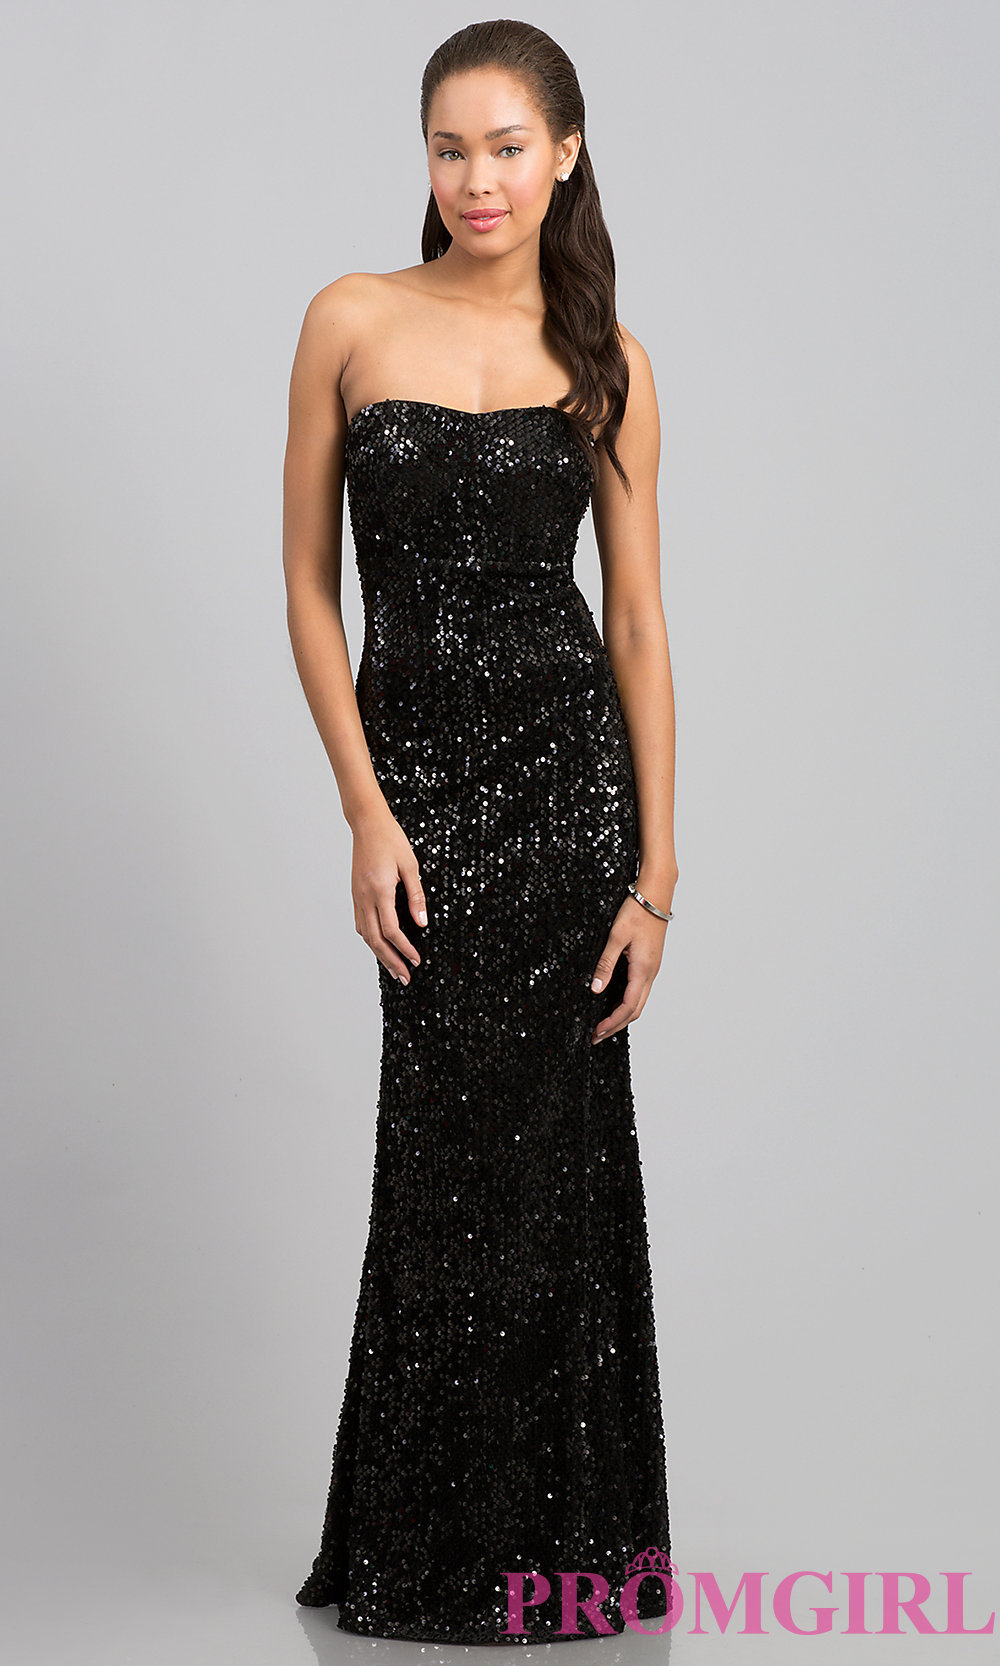 Sparkly Dress Long And Simple Guide To Choosing